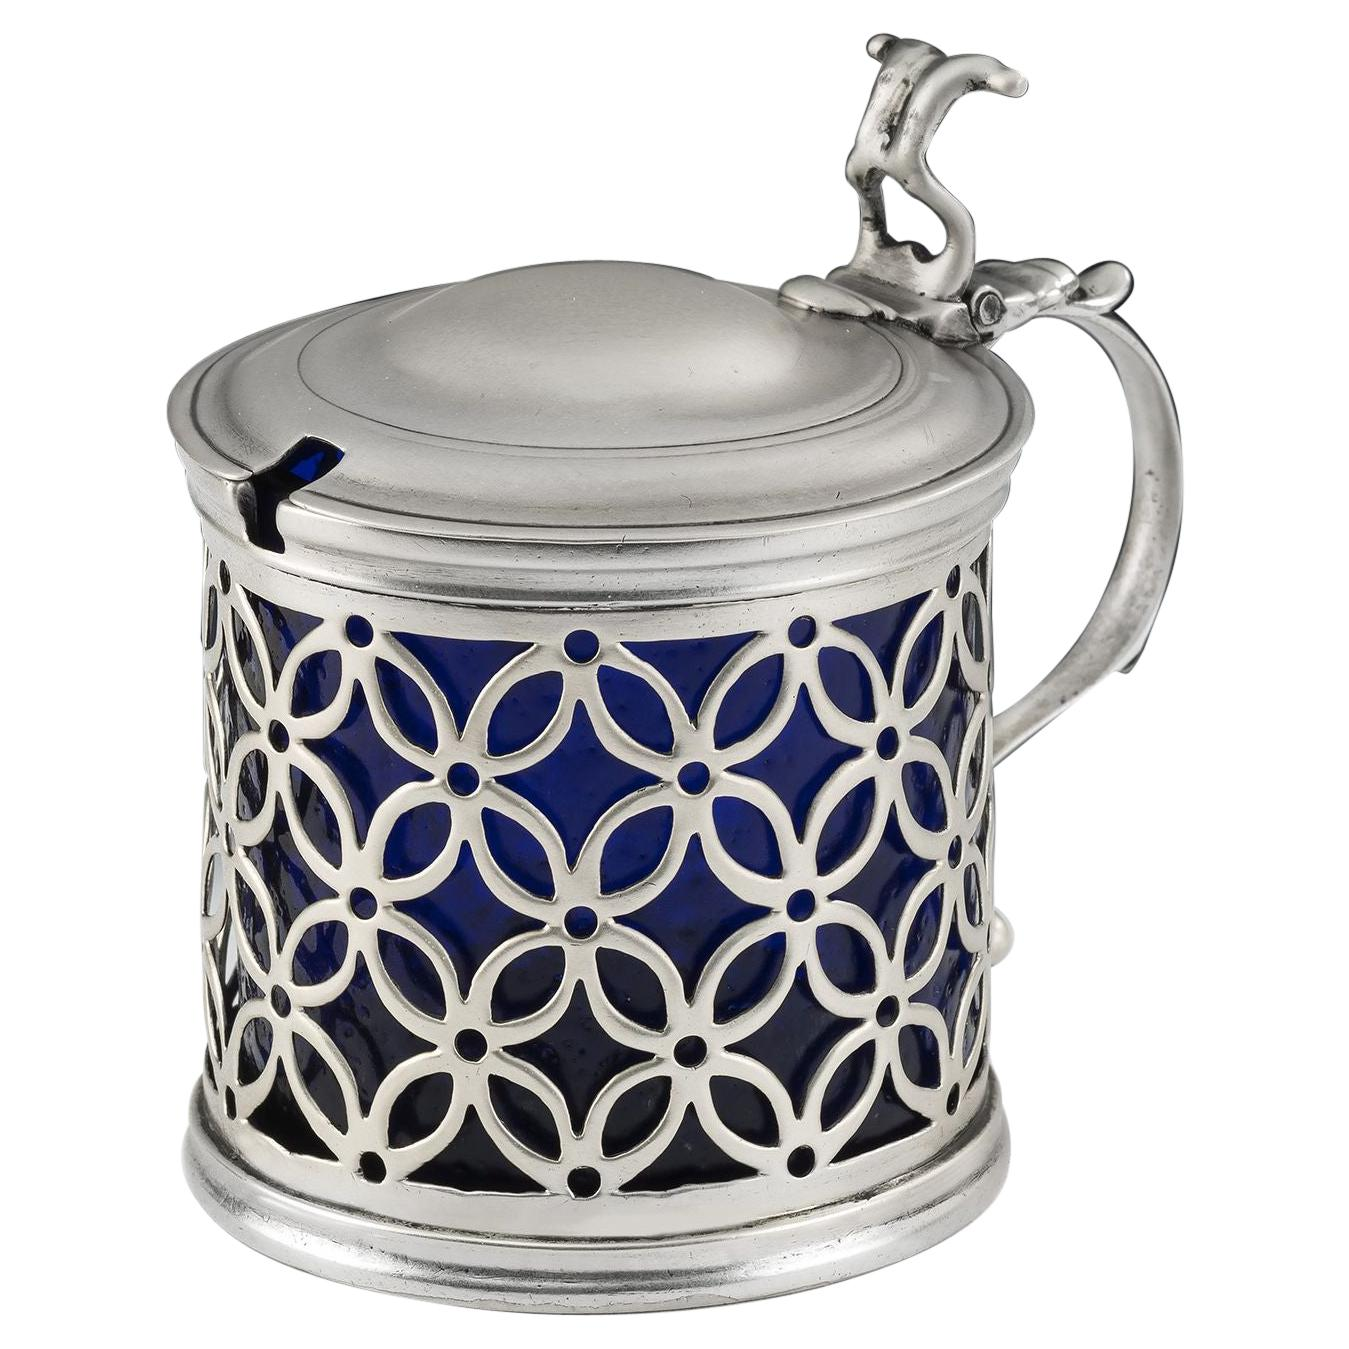 George III Mustard Pot Made in London in 1770 by Andrew Fogelberg